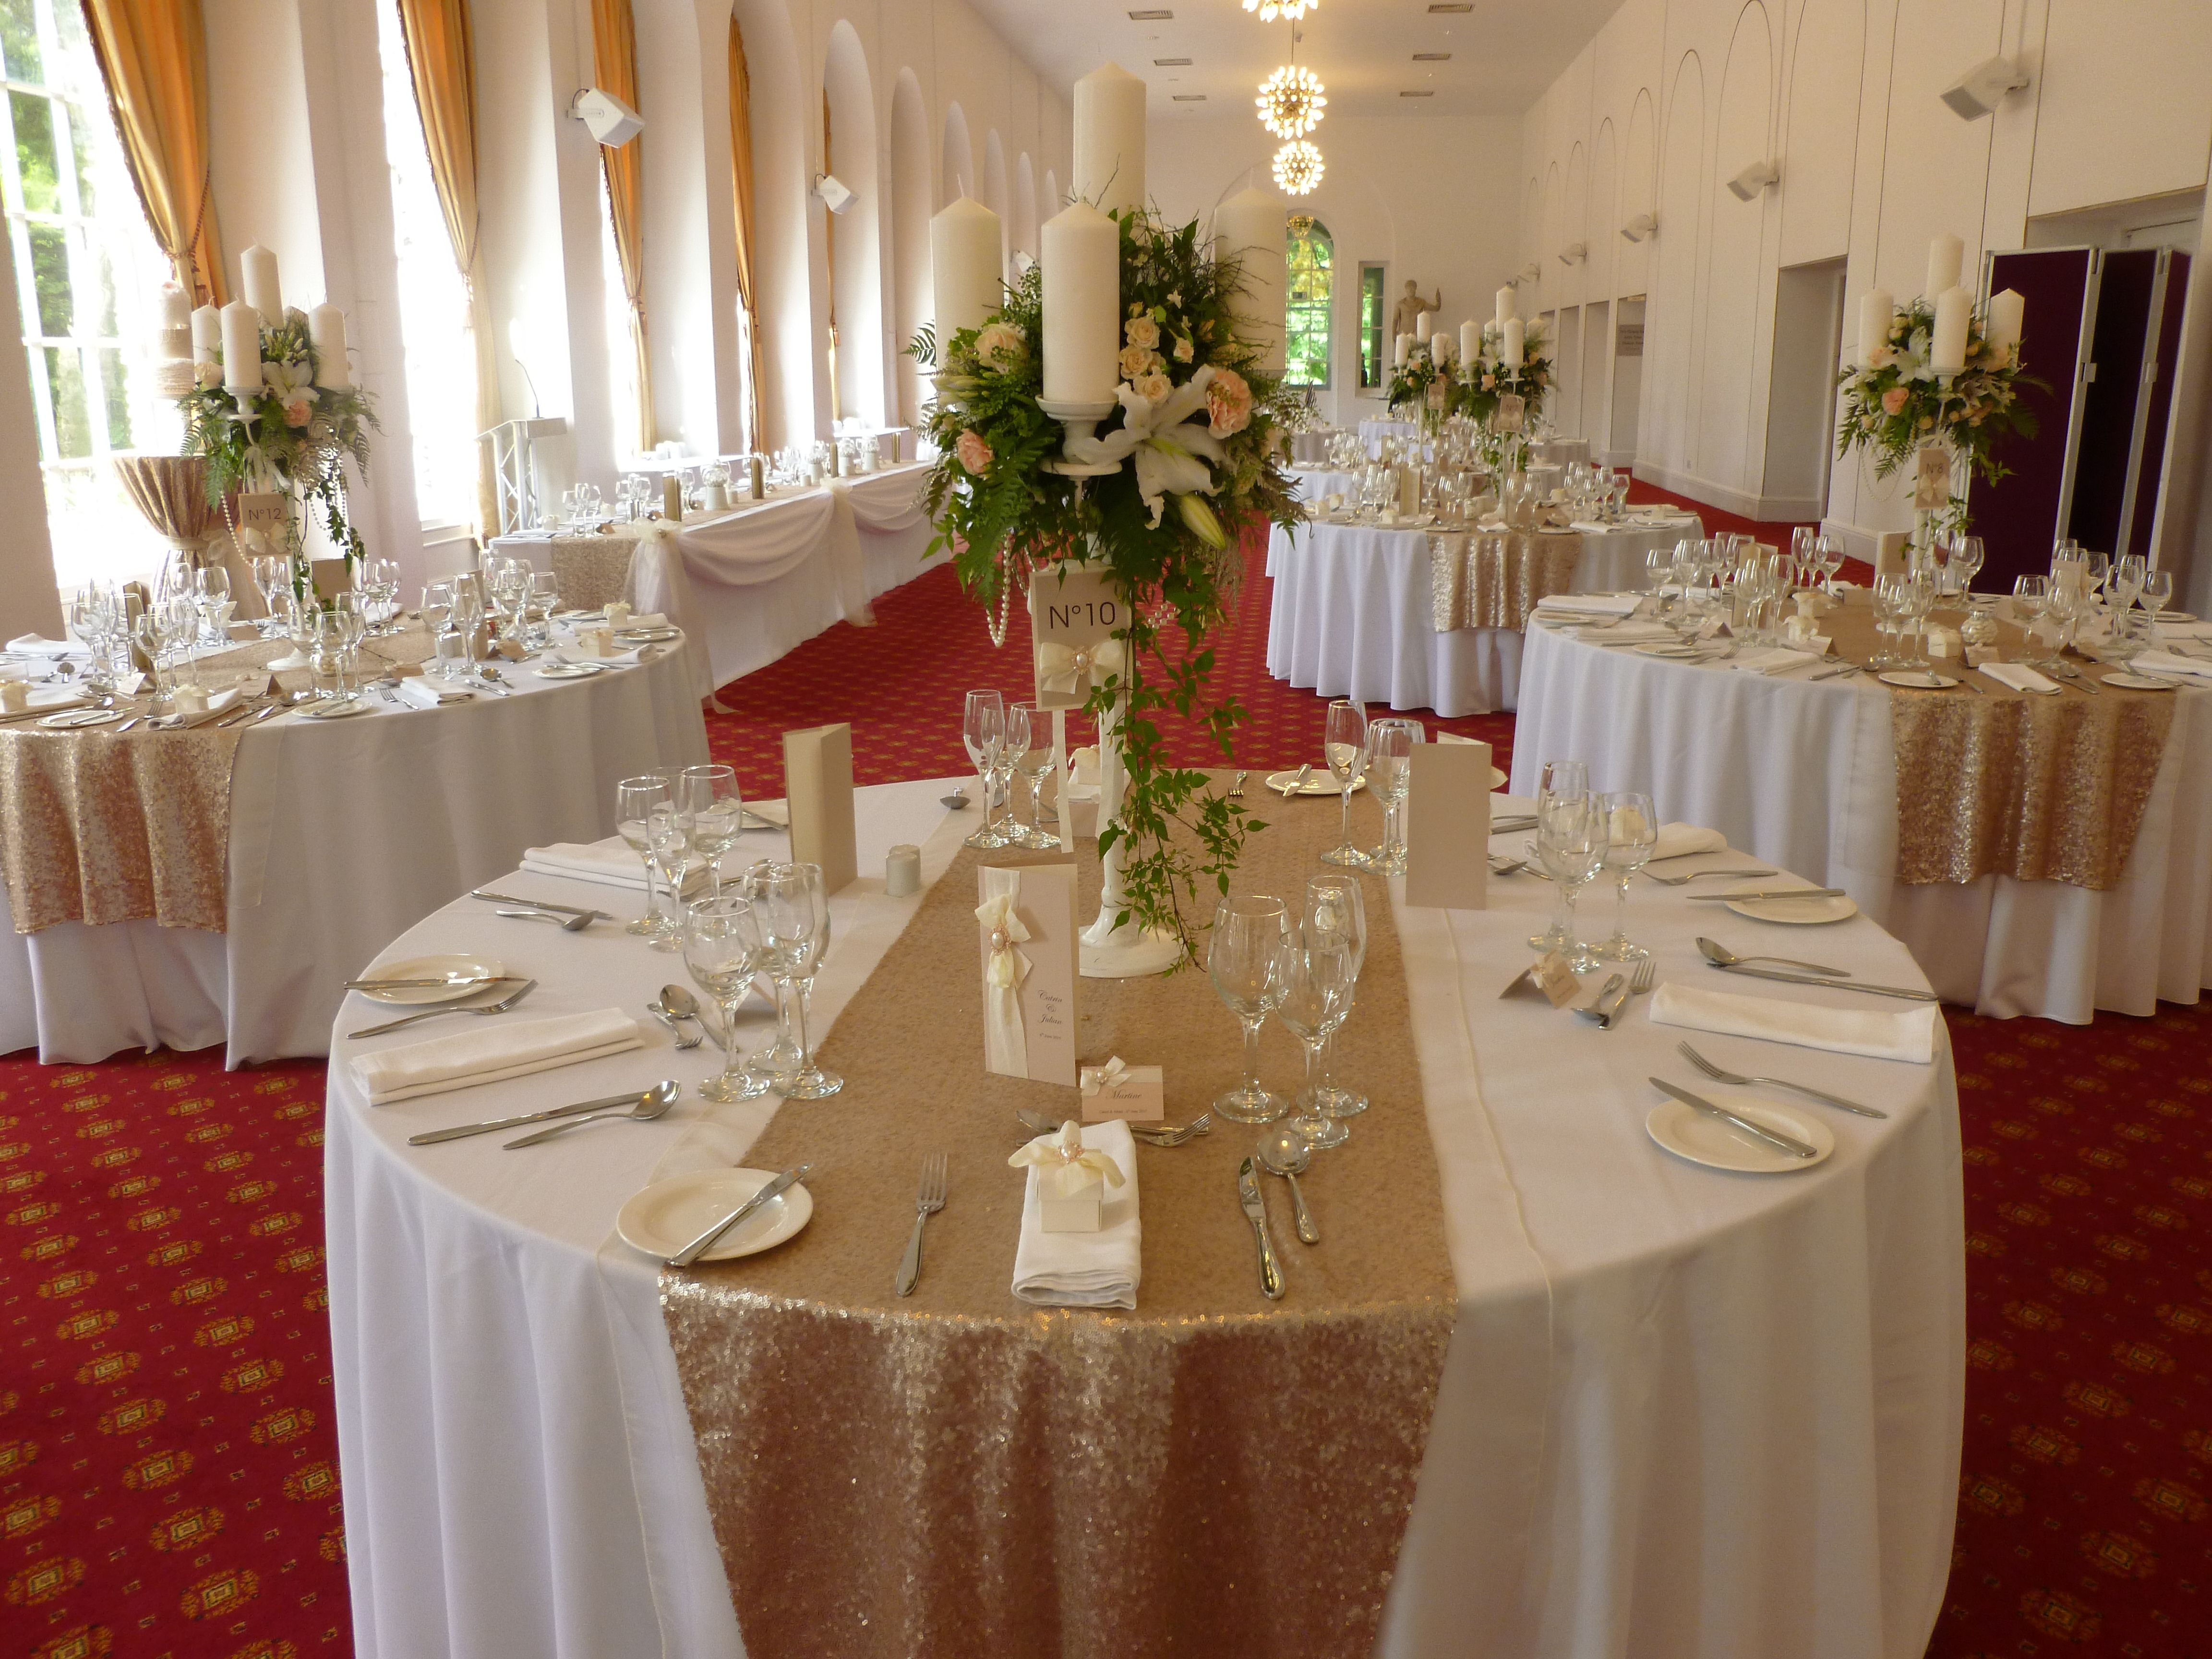 Champagne sequin table runners by Simply Bows and Chair